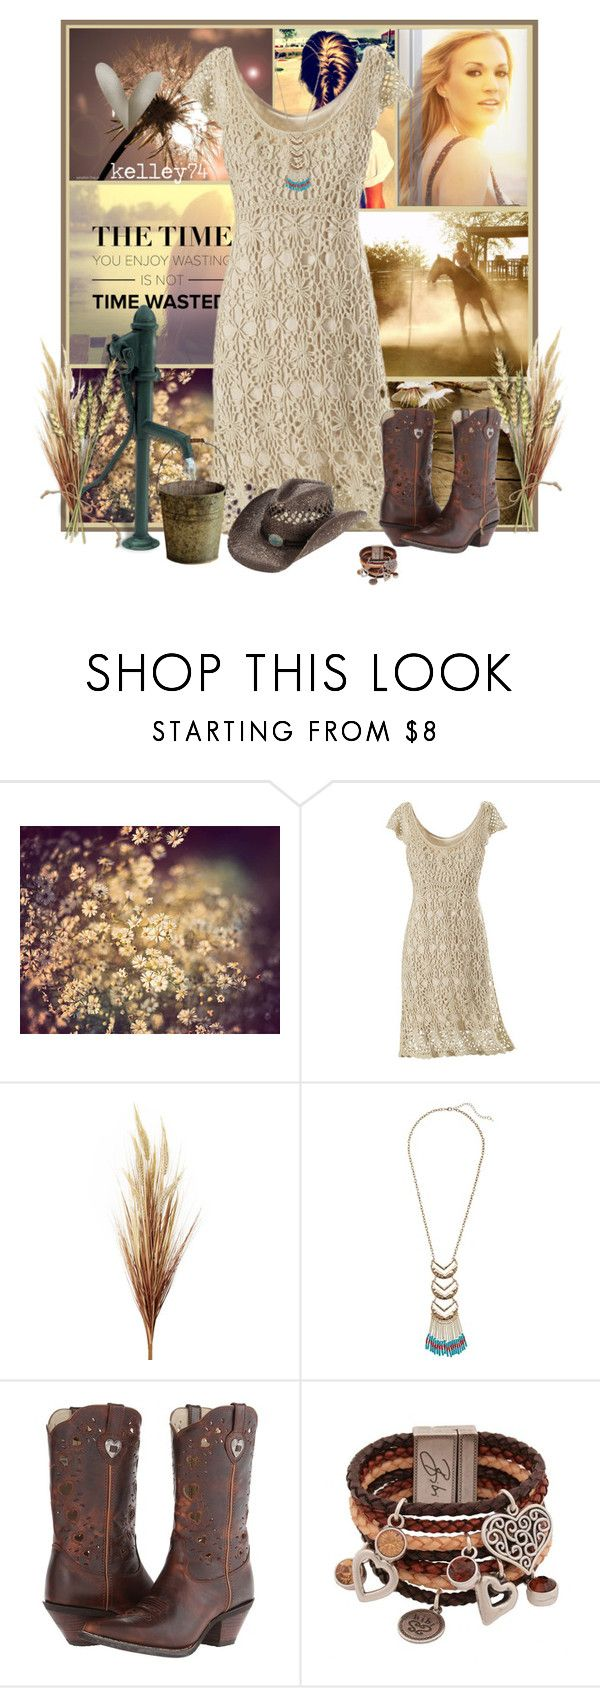 """""""Country Crochet"""" by kelley74 ❤ liked on Polyvore featuring Shabby Chic, Gabriella Rocha, Durango, Bibi Bijoux, Dorfman Pacific and country"""